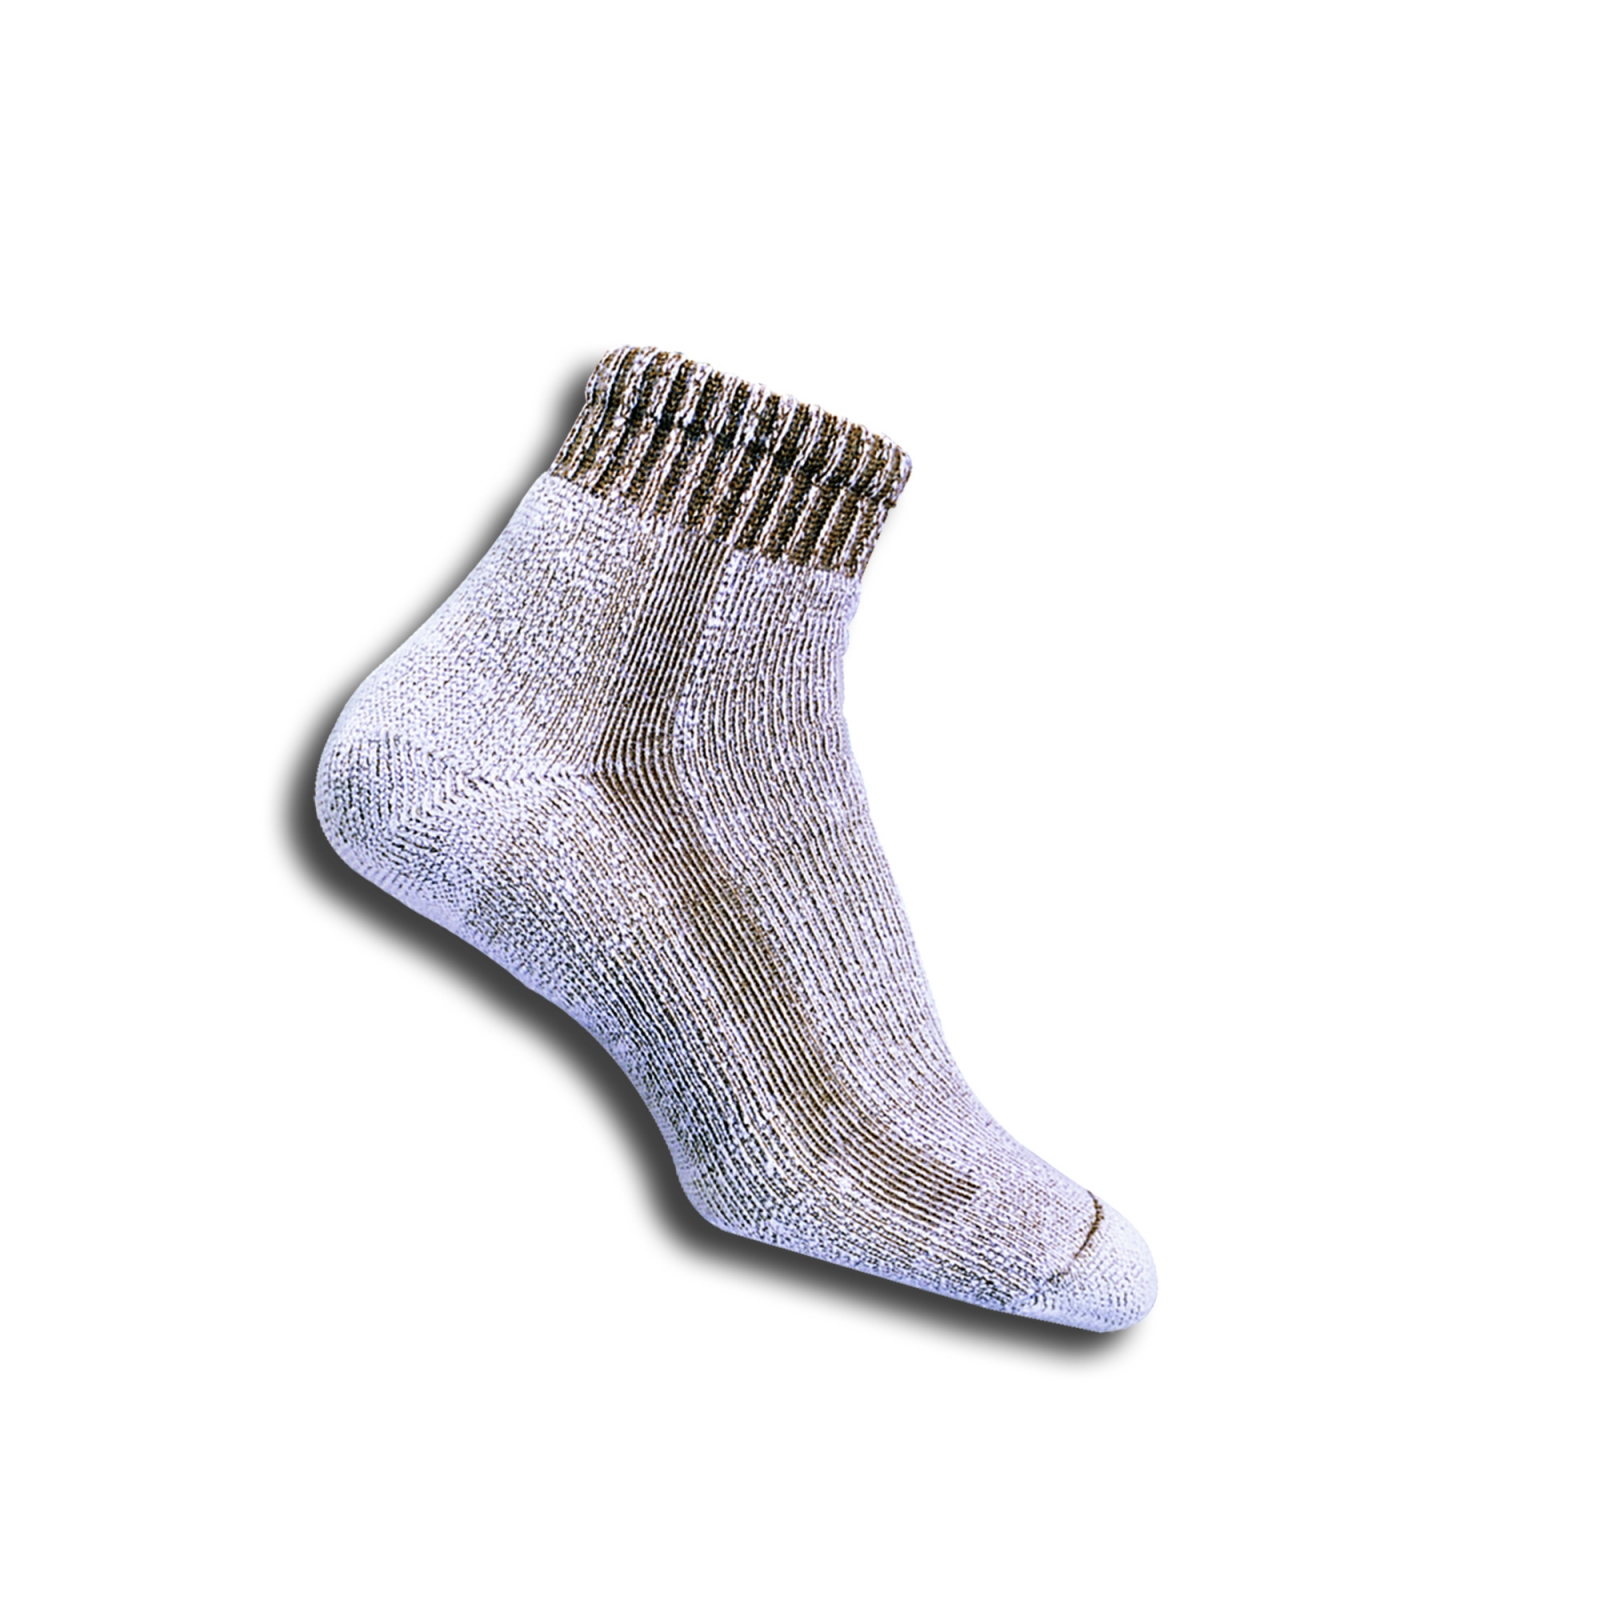 LTHMX Light Hiking Socks Ankle